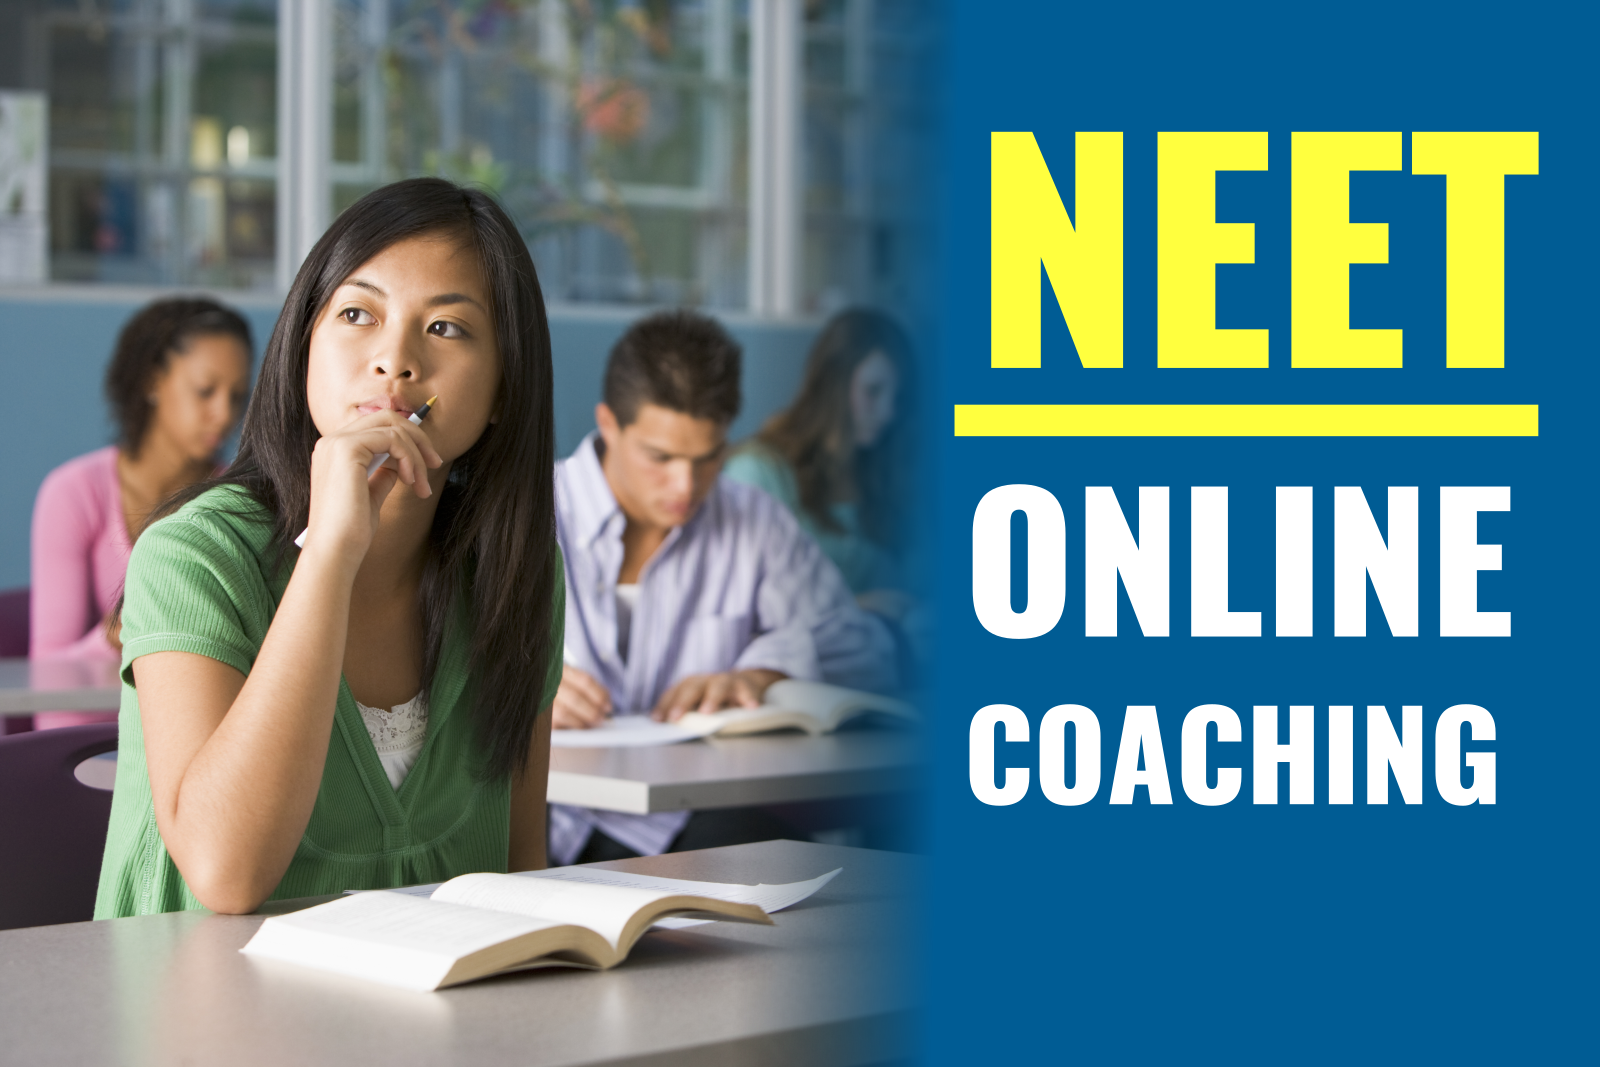 neet online coaching featuredimage